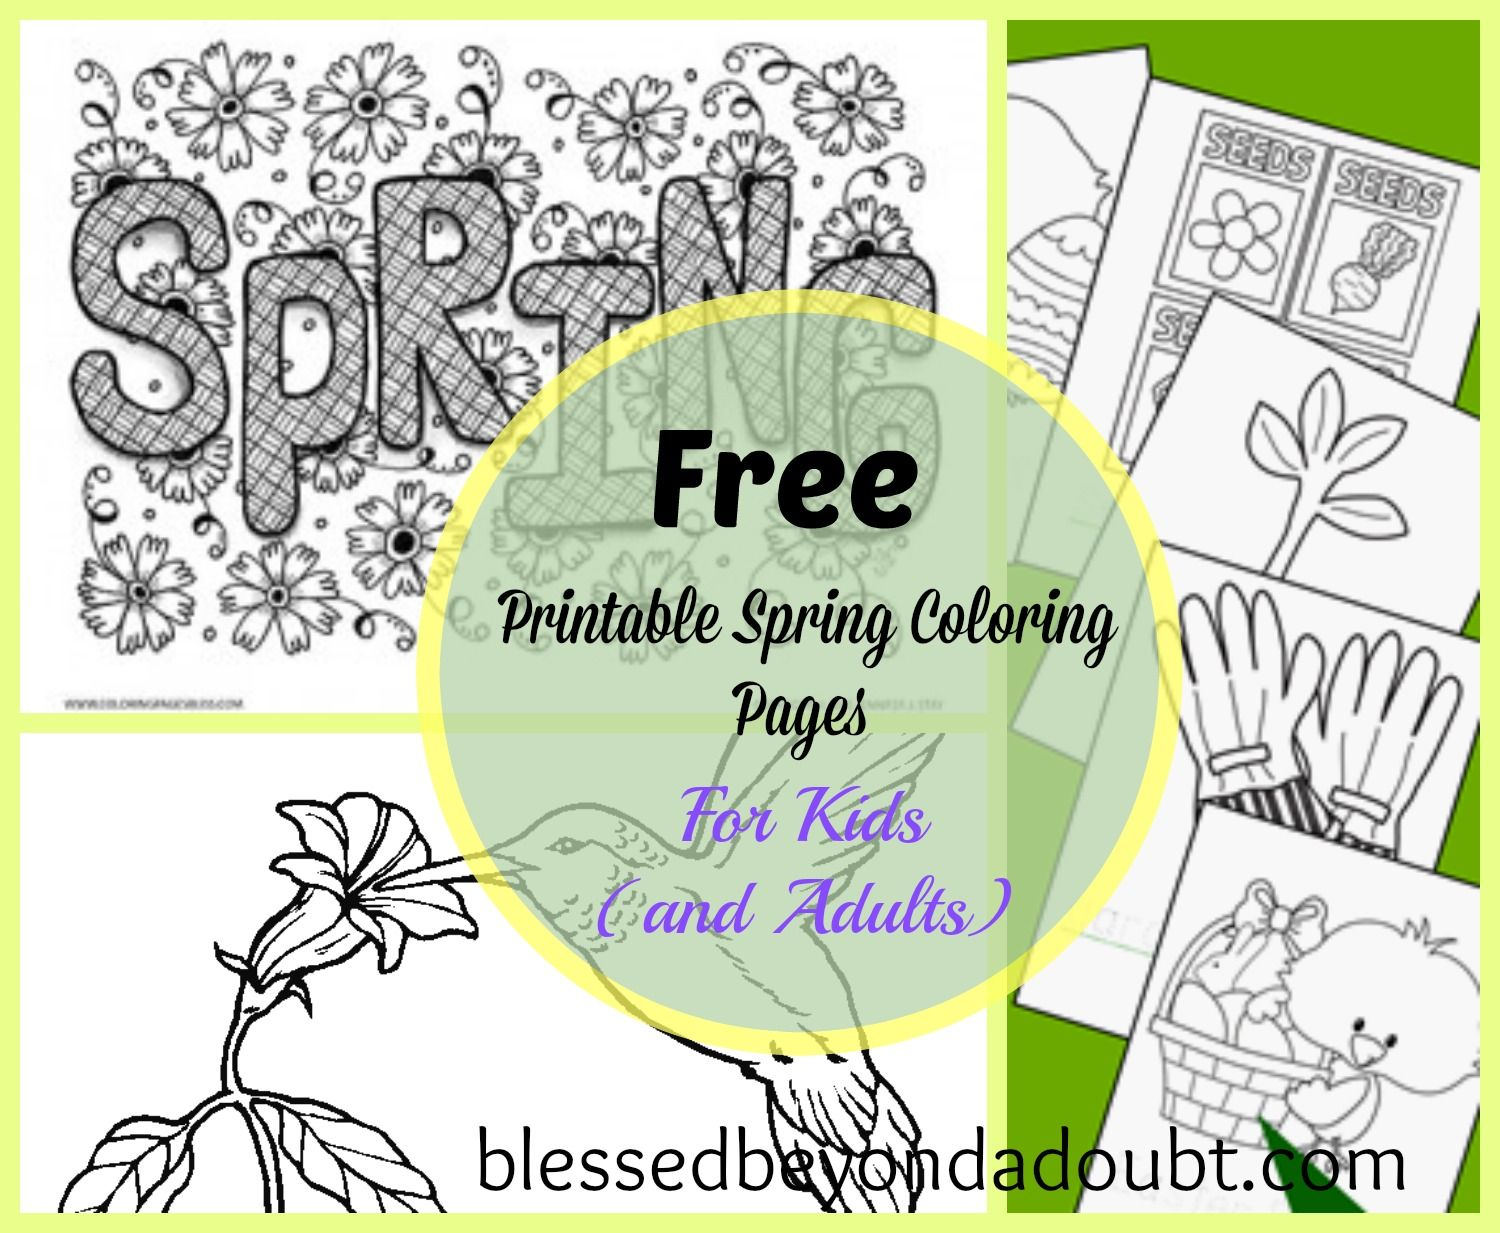 Spring coloring contest pages - 20 Free Printable Spring Coloring Sheets For Kids And Adults